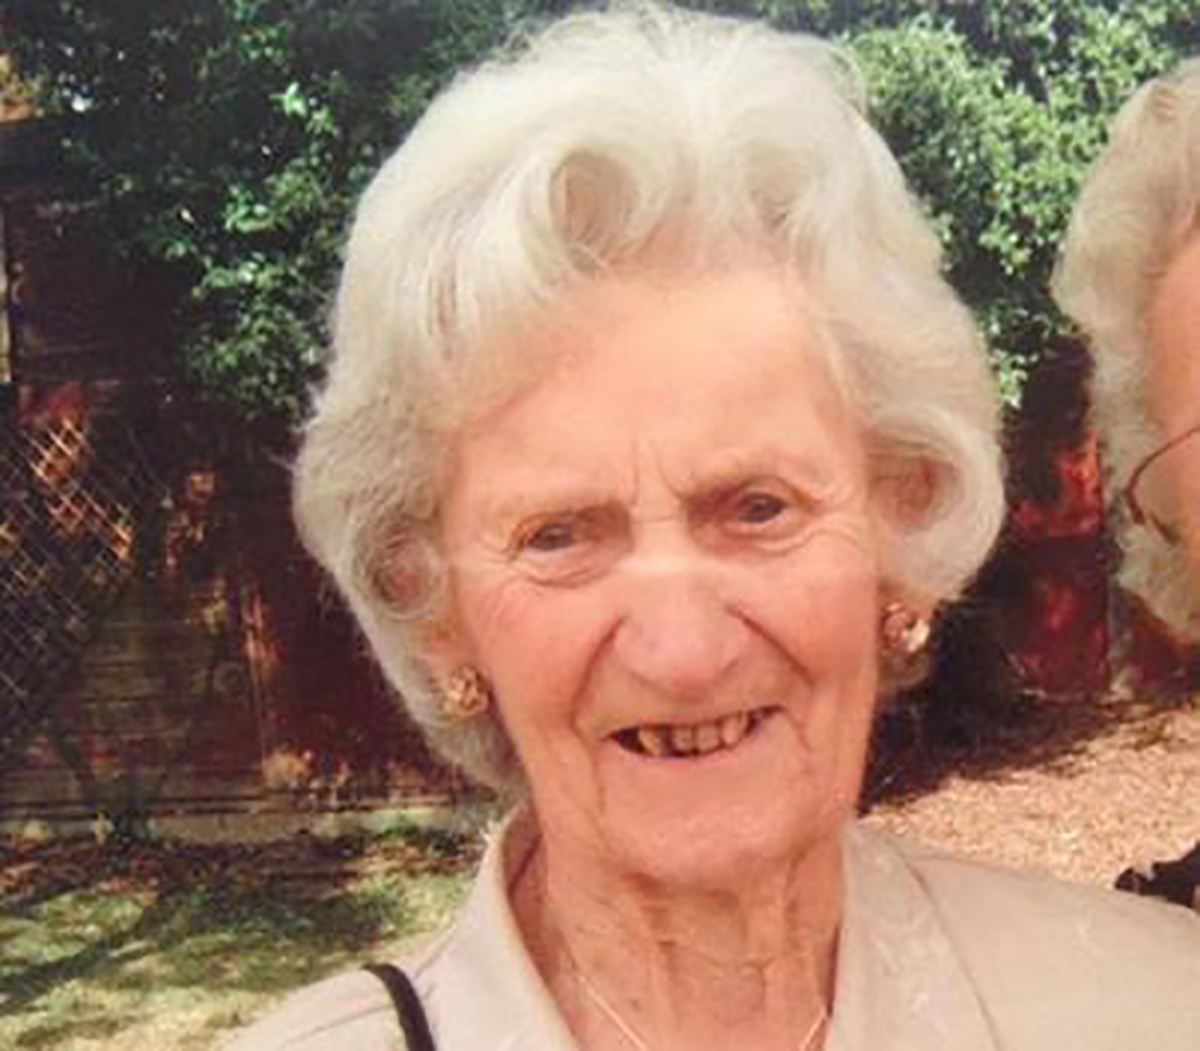 Police have informed the family of Mary Holland that they have discovered a body in their search for the 87-year-old